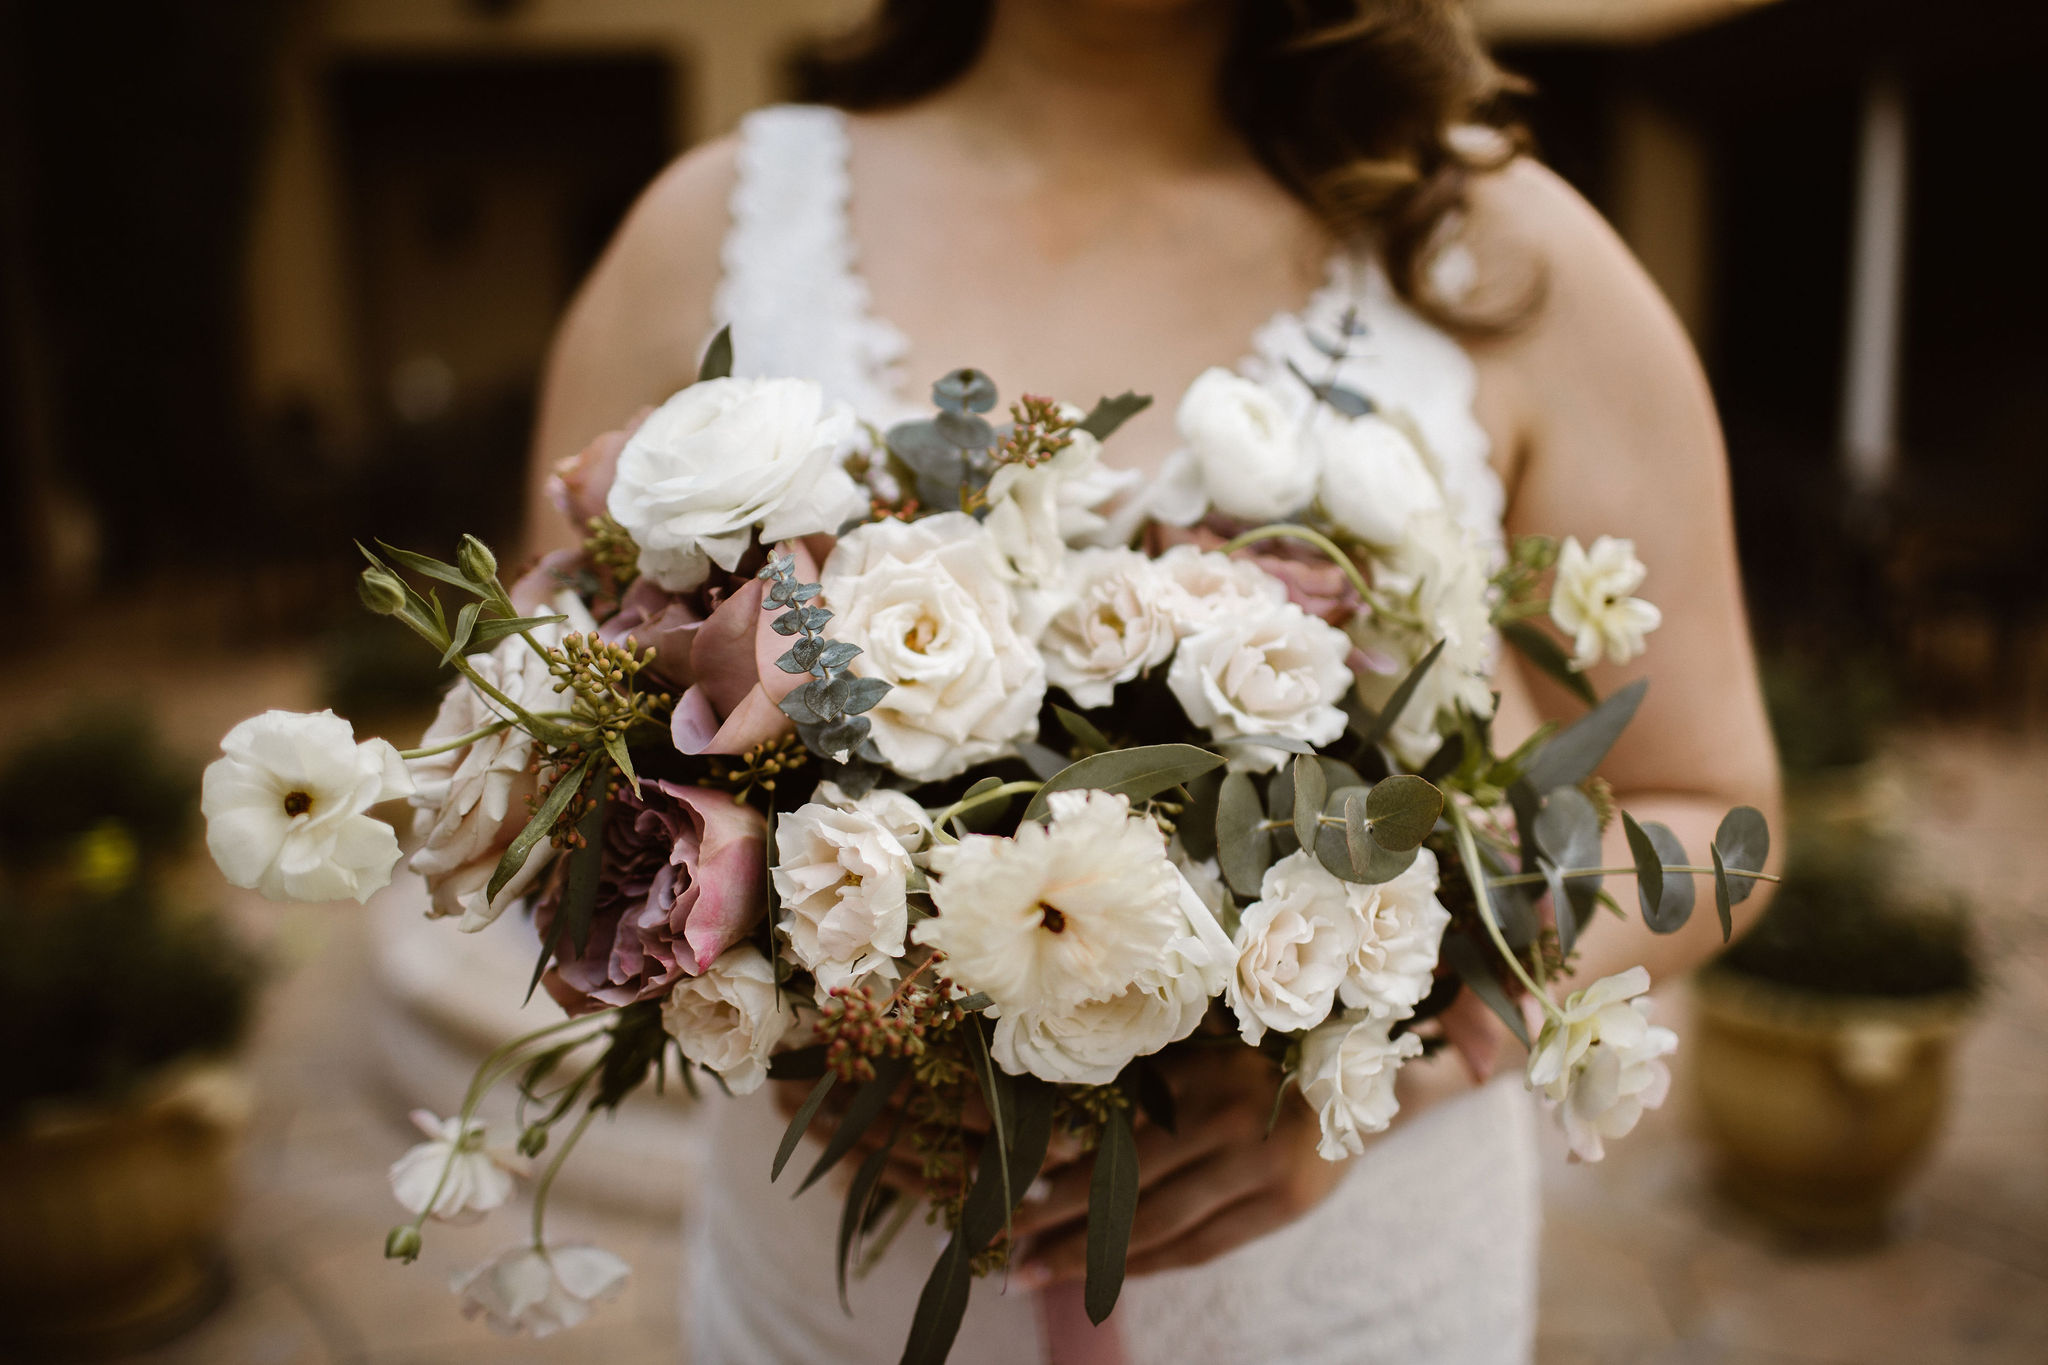 bride holding bouquet of white and mauve floral